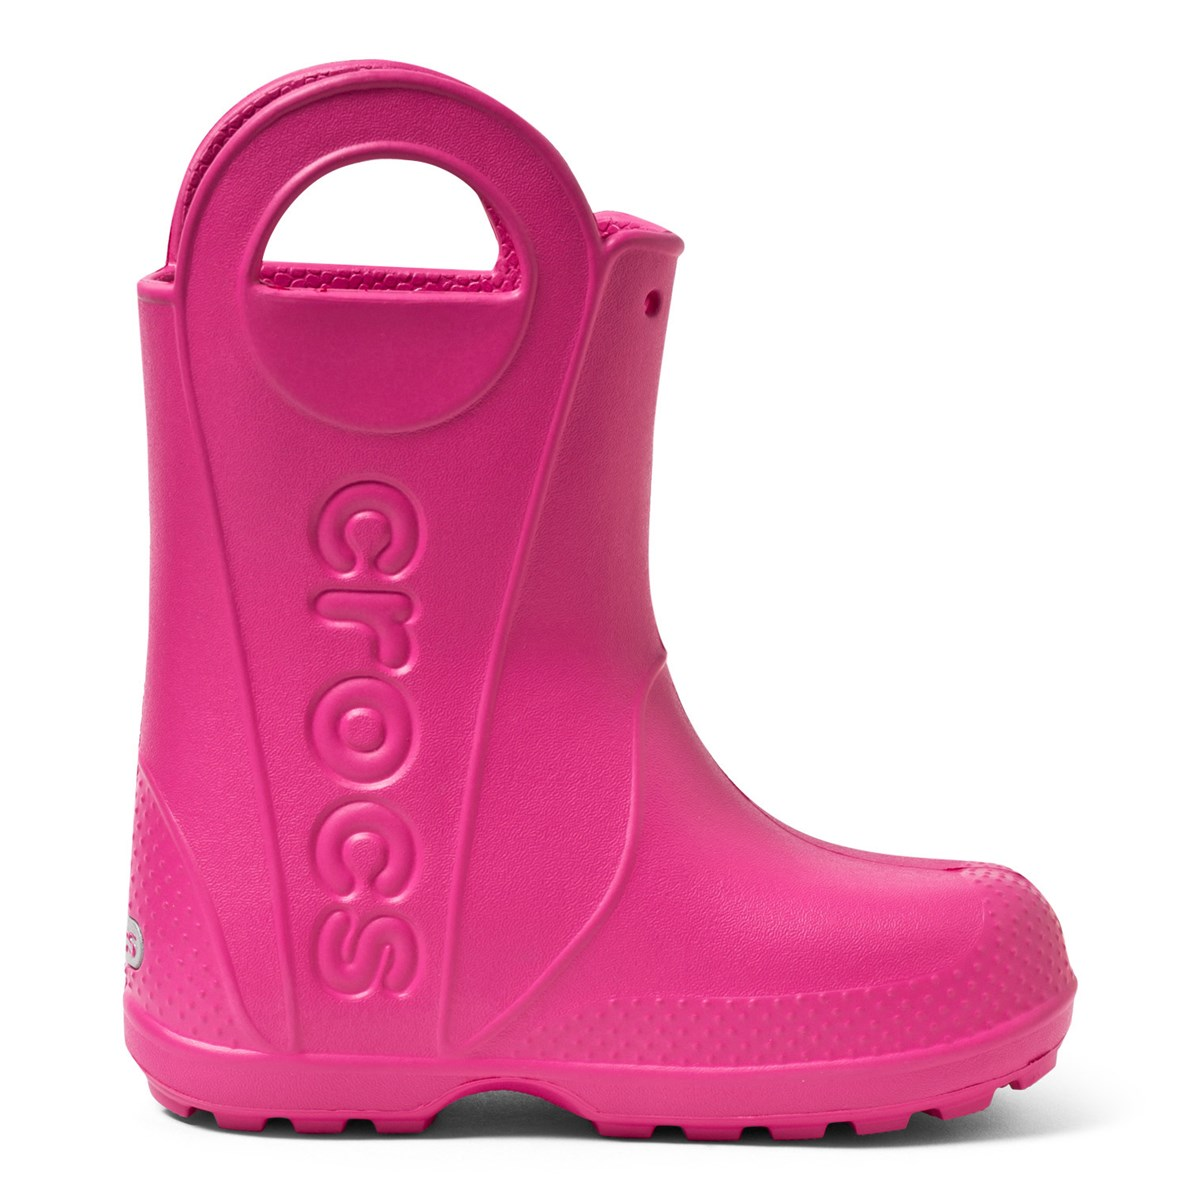 Crocs Unisex Kids/' Handle It Rain Boot K